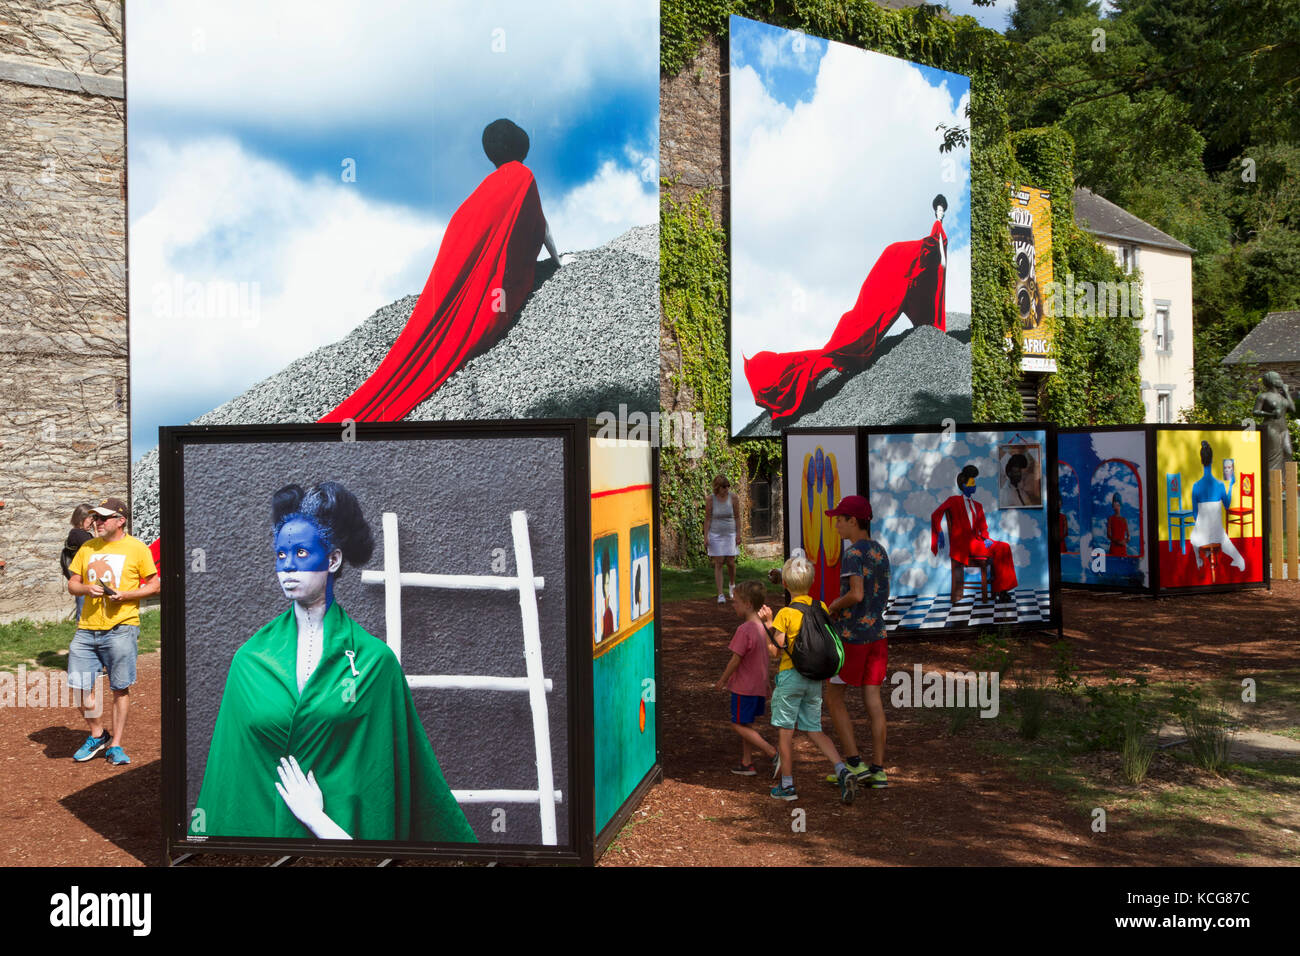 Outdoor photography exposition stock photos outdoor photography exposition stock images alamy - Festival photo la gacilly ...